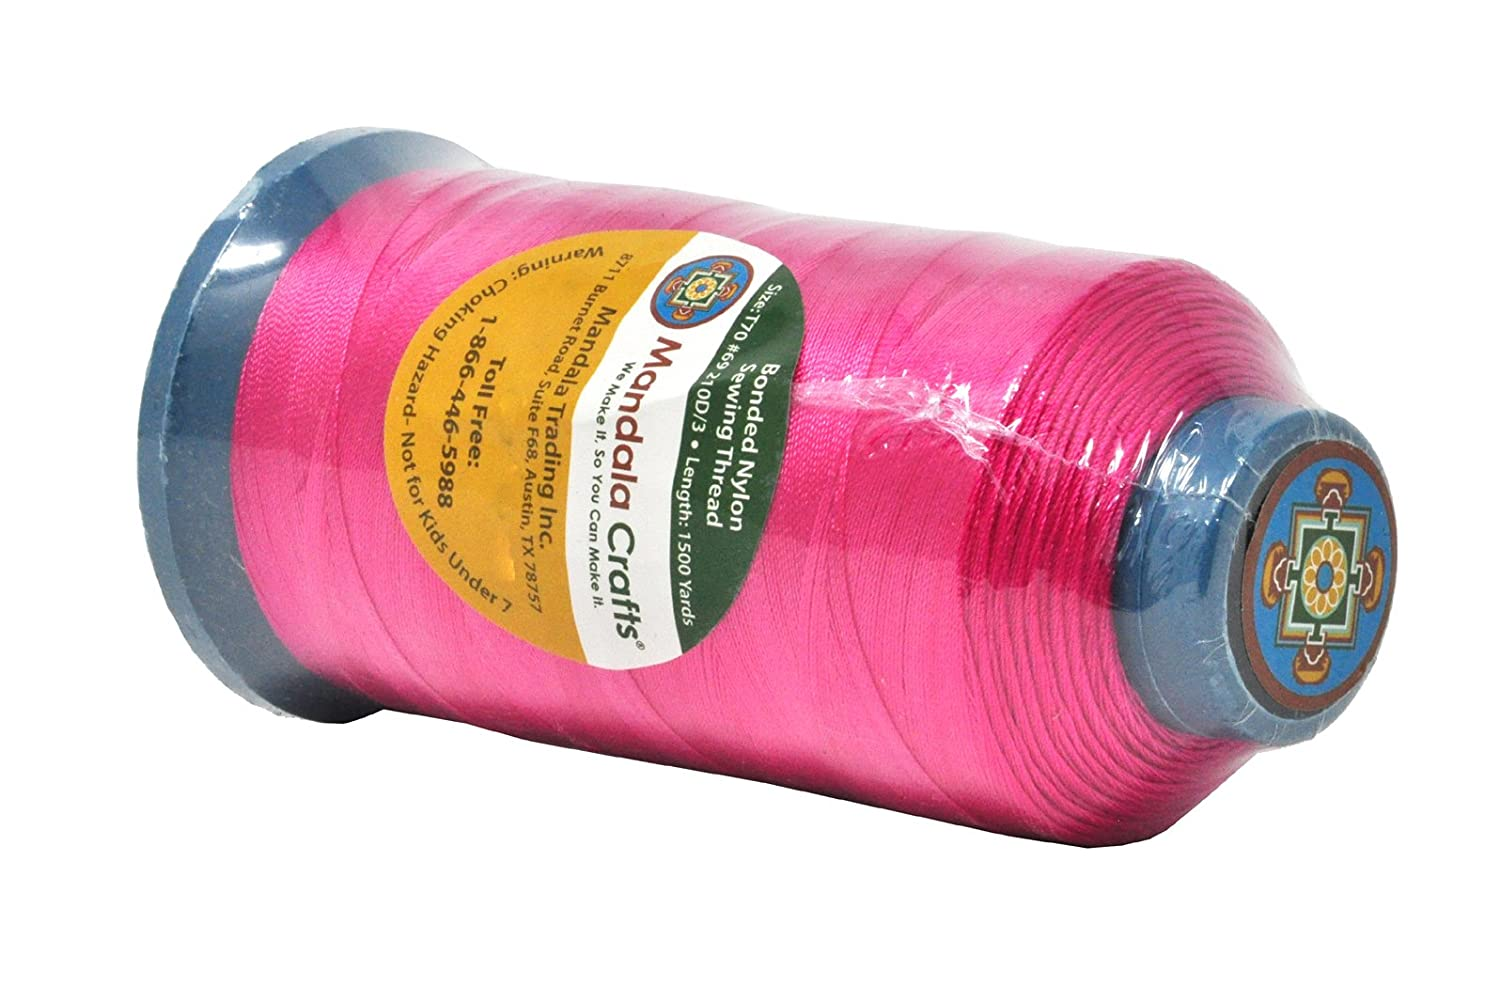 Jeans and Weaving Hair; Heavy-Duty; 1500 Yards Size 69 T70 Mandala Crafts Bonded Nylon Thread for Sewing Leather Apple Green Upholstery